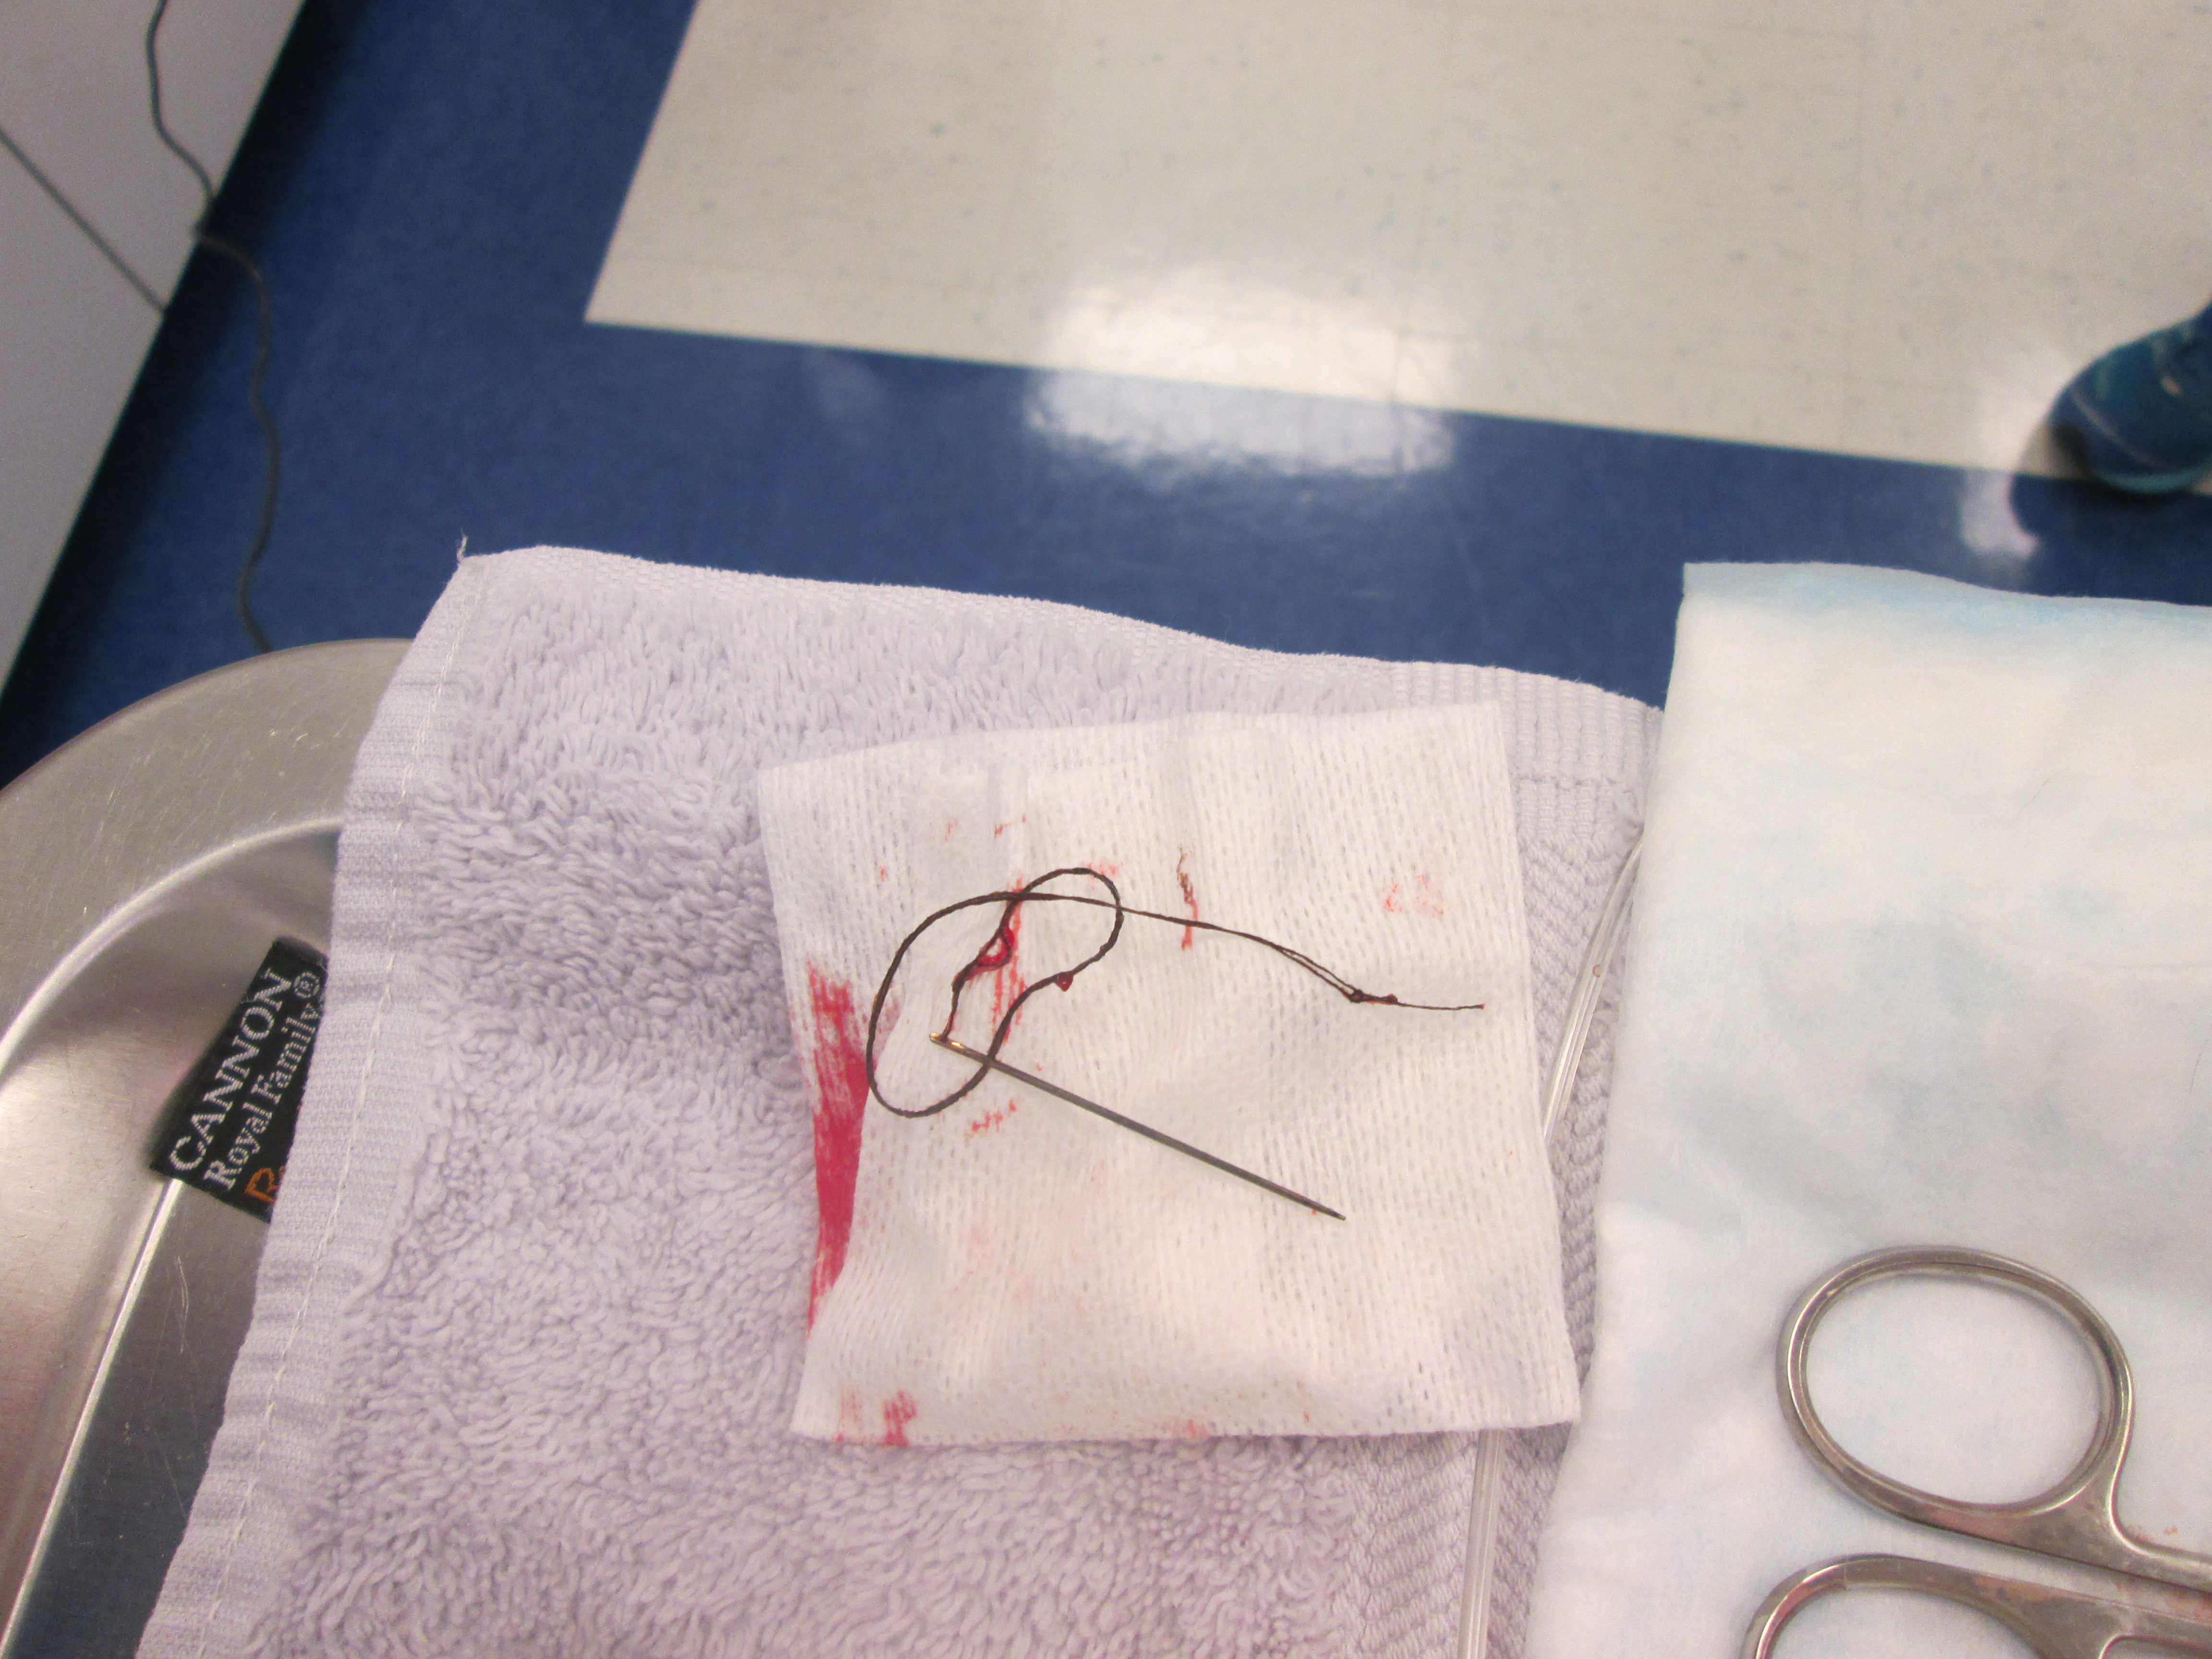 The needle and thread after removal.